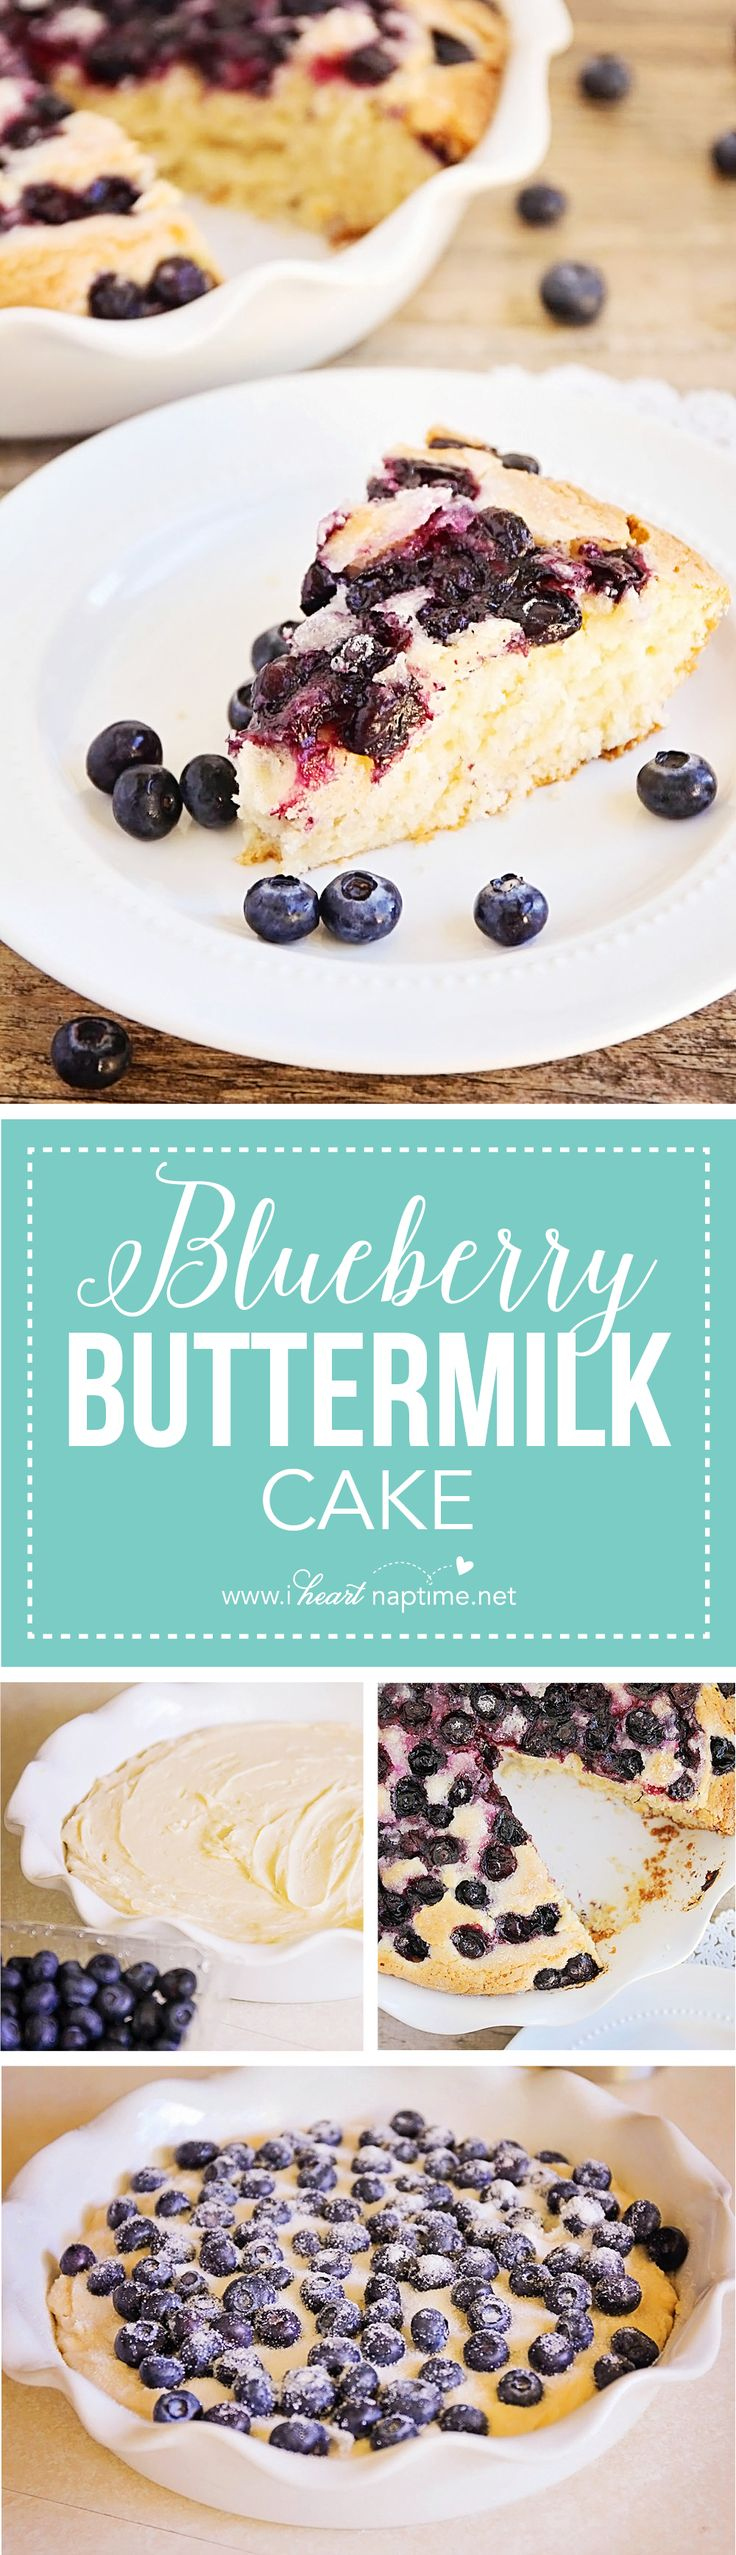 Blueberry Buttermilk Cake... this simple and sweet cake is quick and easy to make, and the perfect way to enjoy those fresh summer berries!